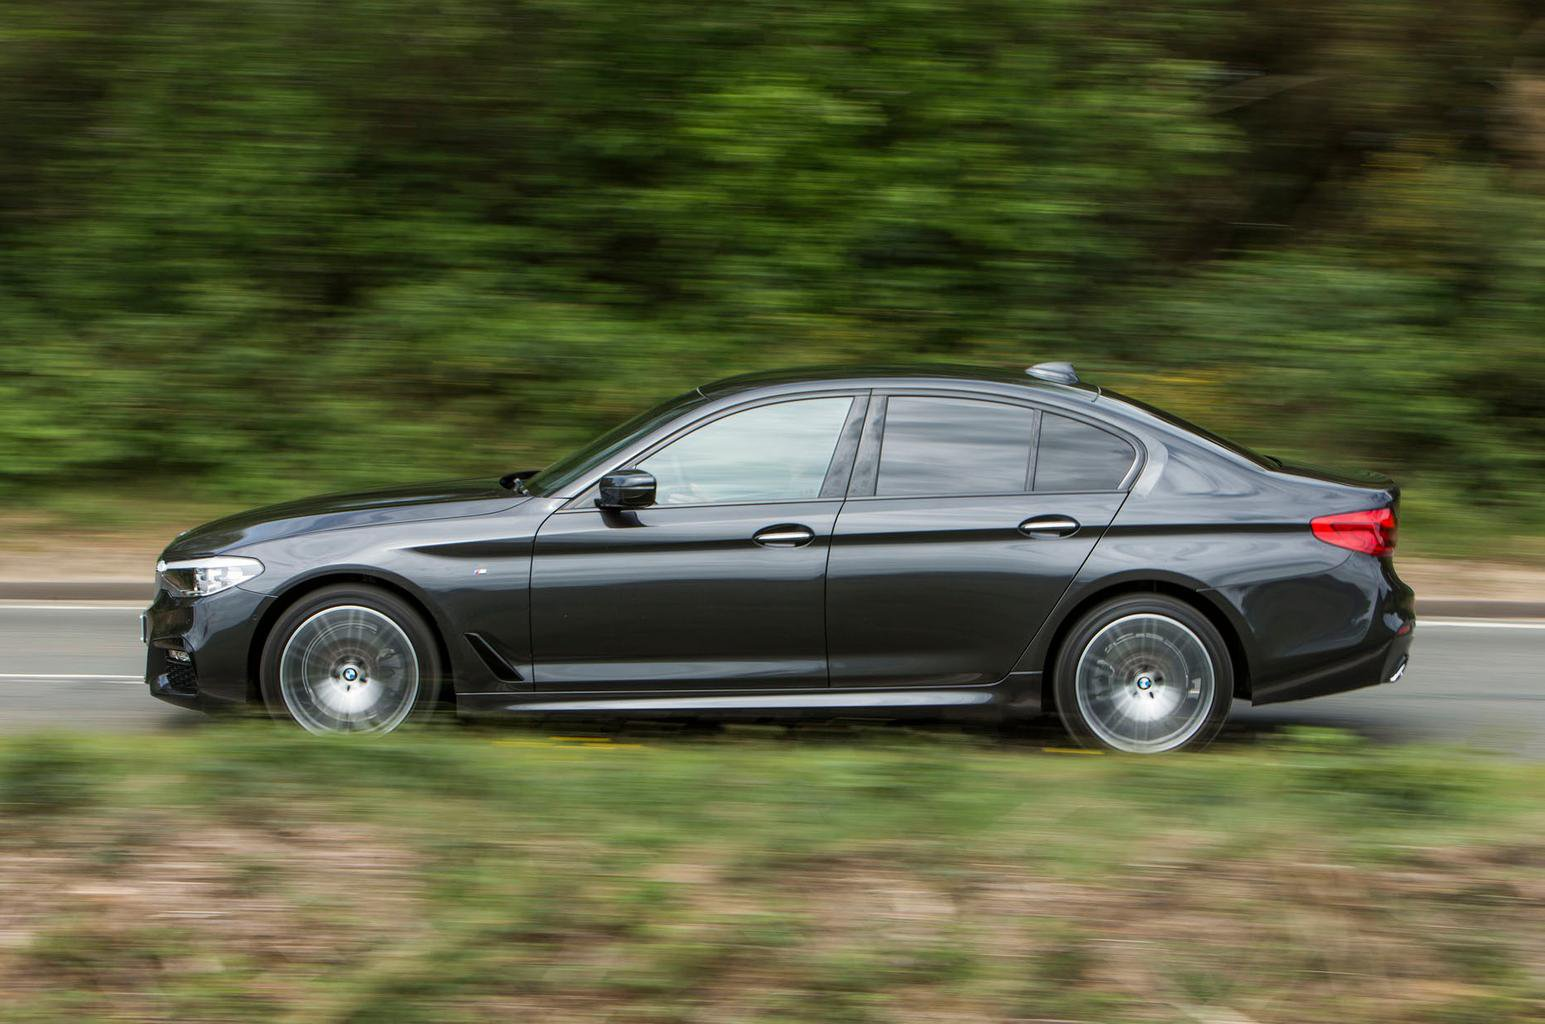 Used BMW 5 Series Saloon 17-present